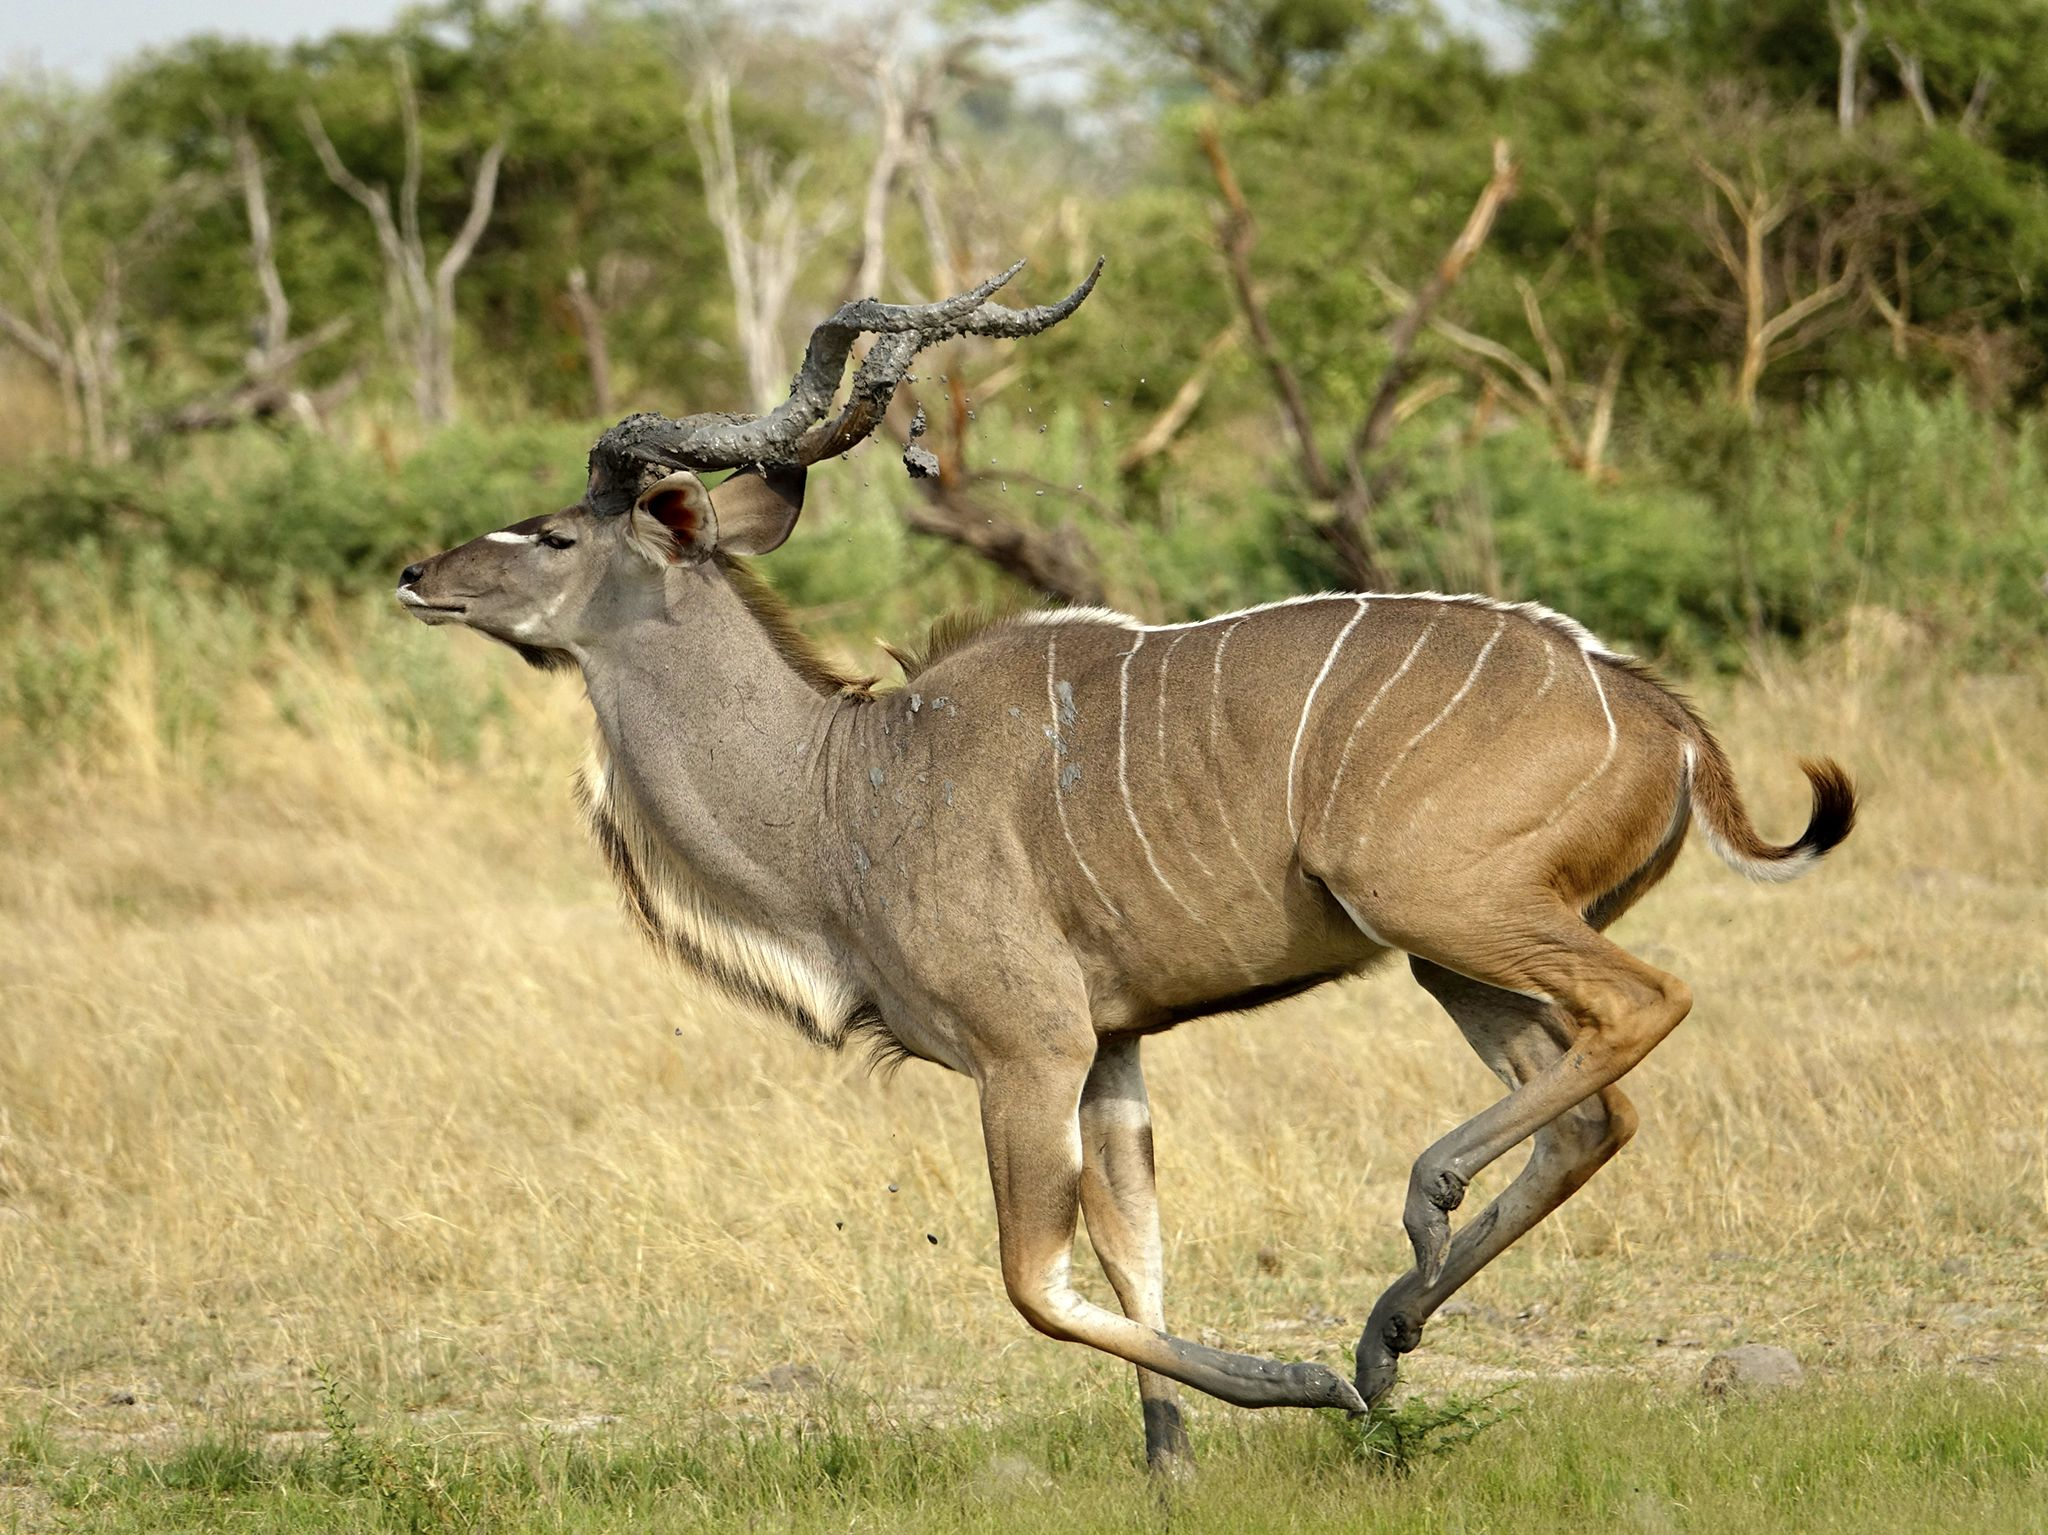 A kudu runs away after being startled at a water pool. This image is from Savage Kingdom. [Photo of the day - ژوئن 2019]